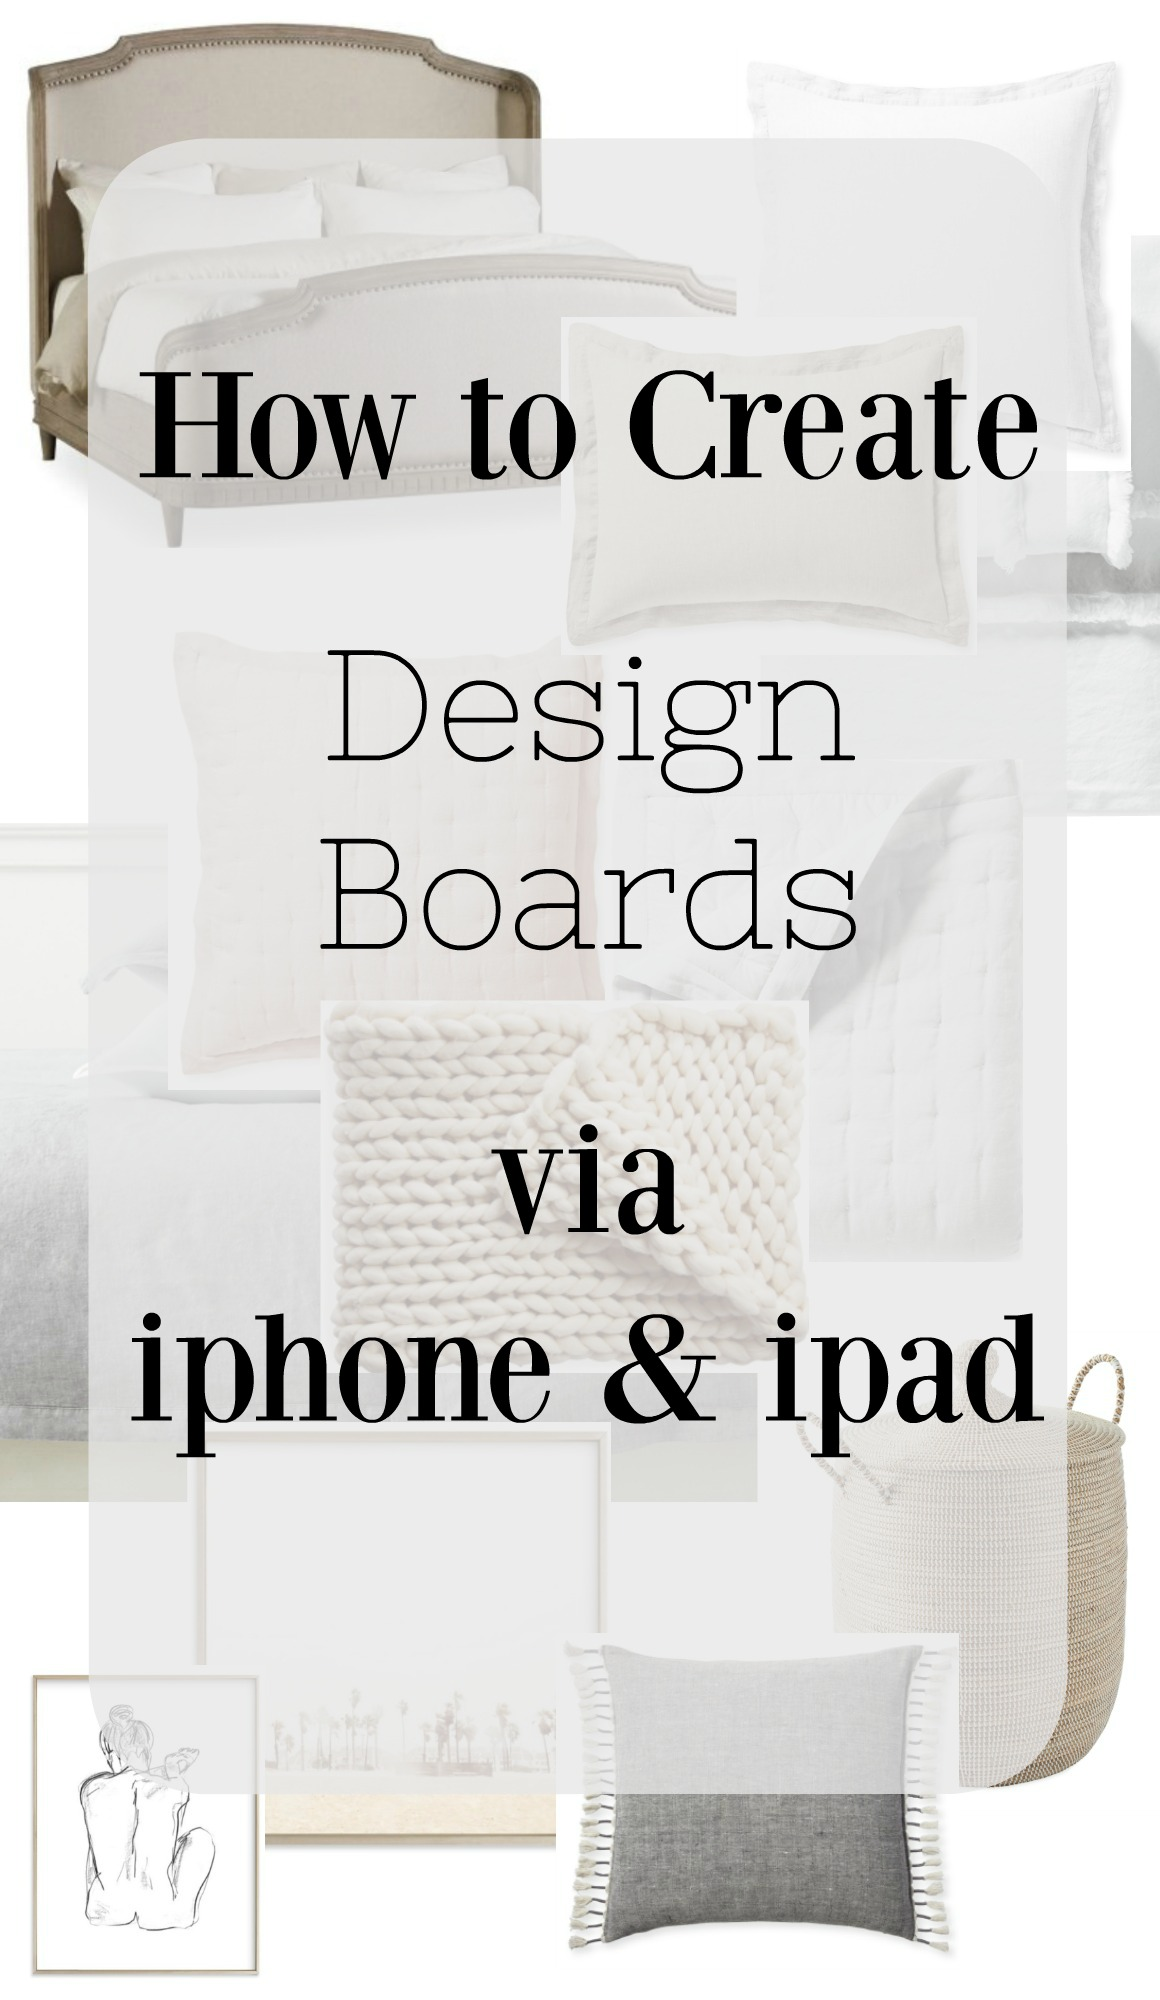 How to Create Design Boards from Iphone and Ipad